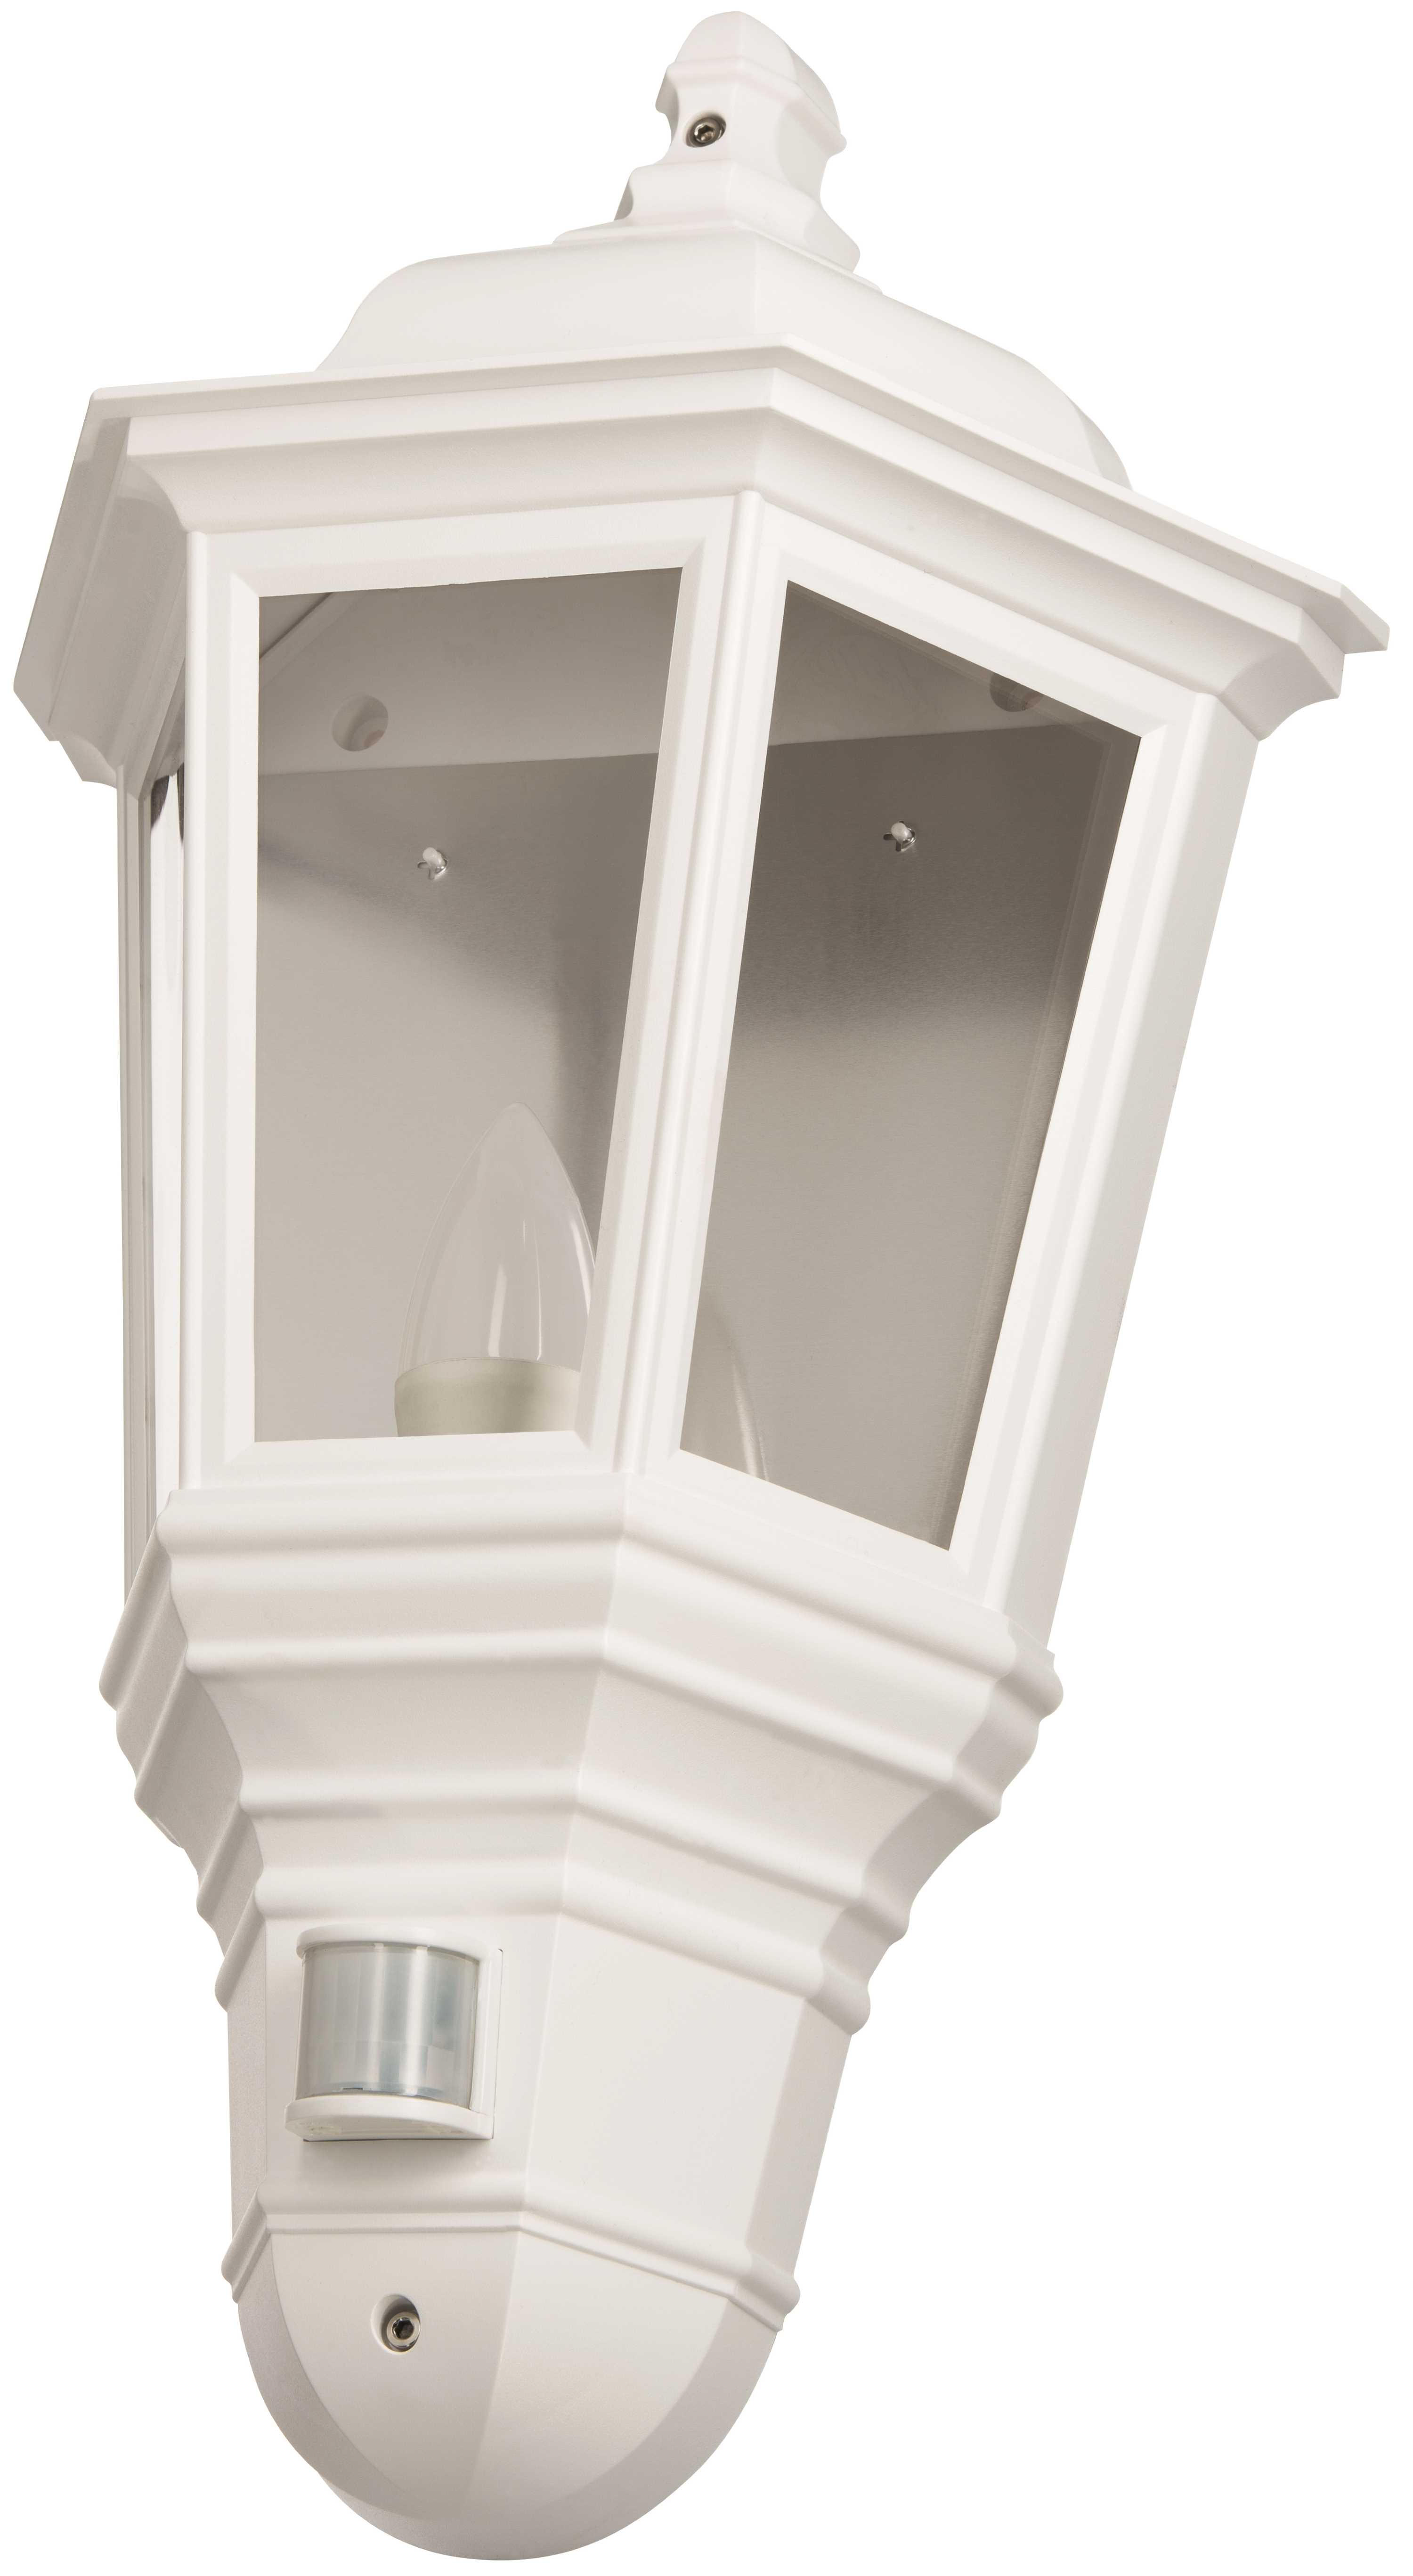 Timeguard CLLEDH45PIRWH White LED Half Carriage Lantern PIR c/w LED Candle Lamp